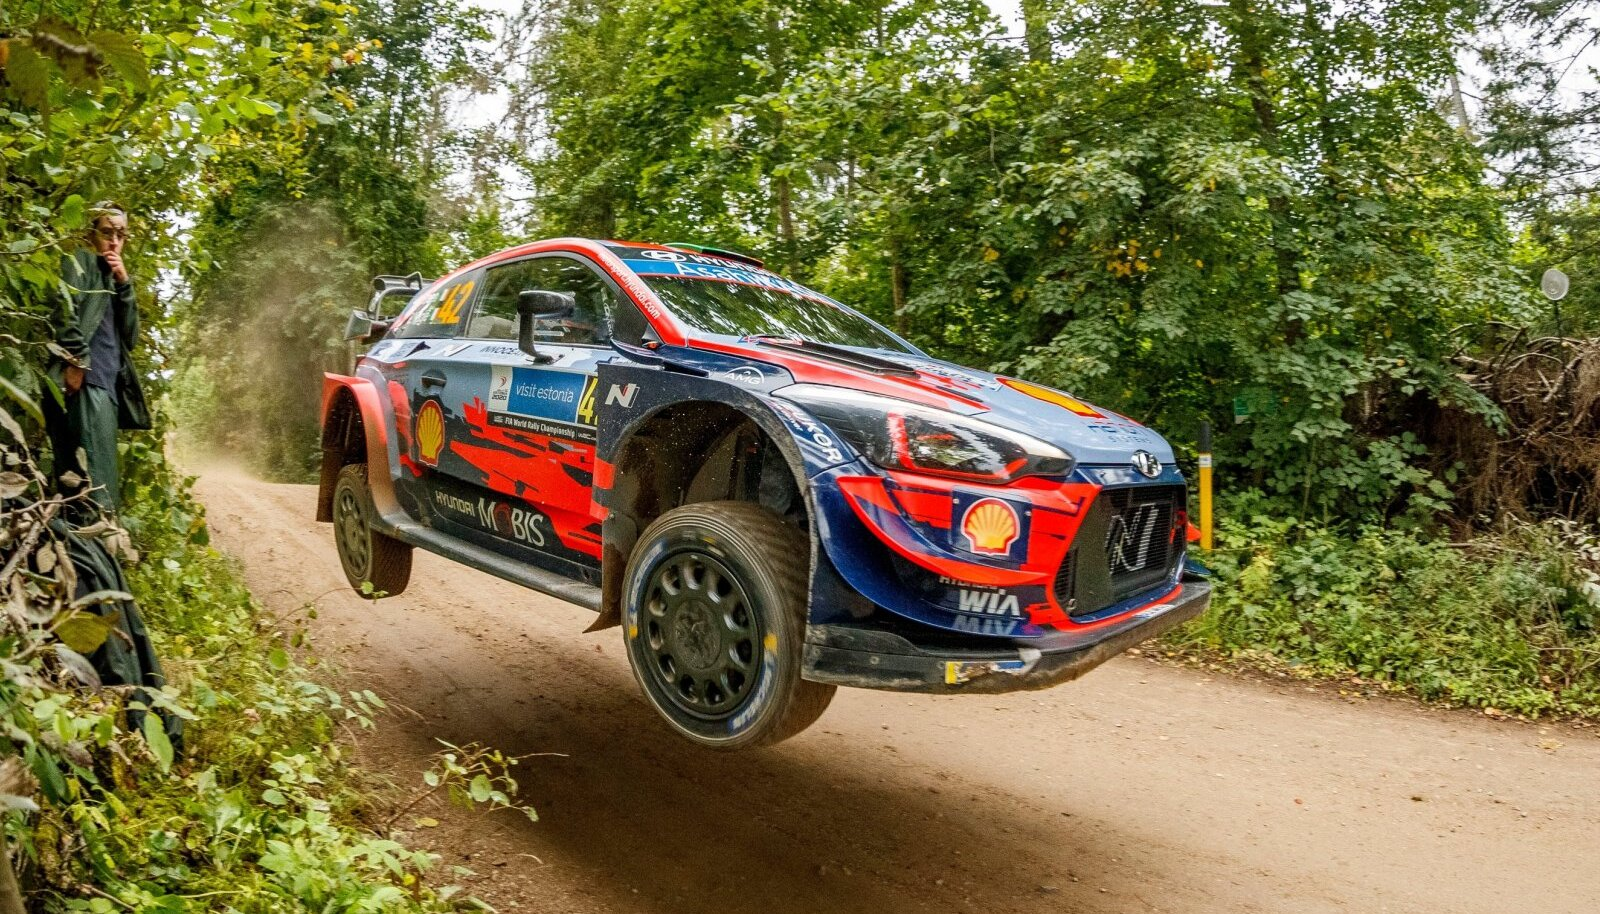 WRC RALLY ESTONIA 2020